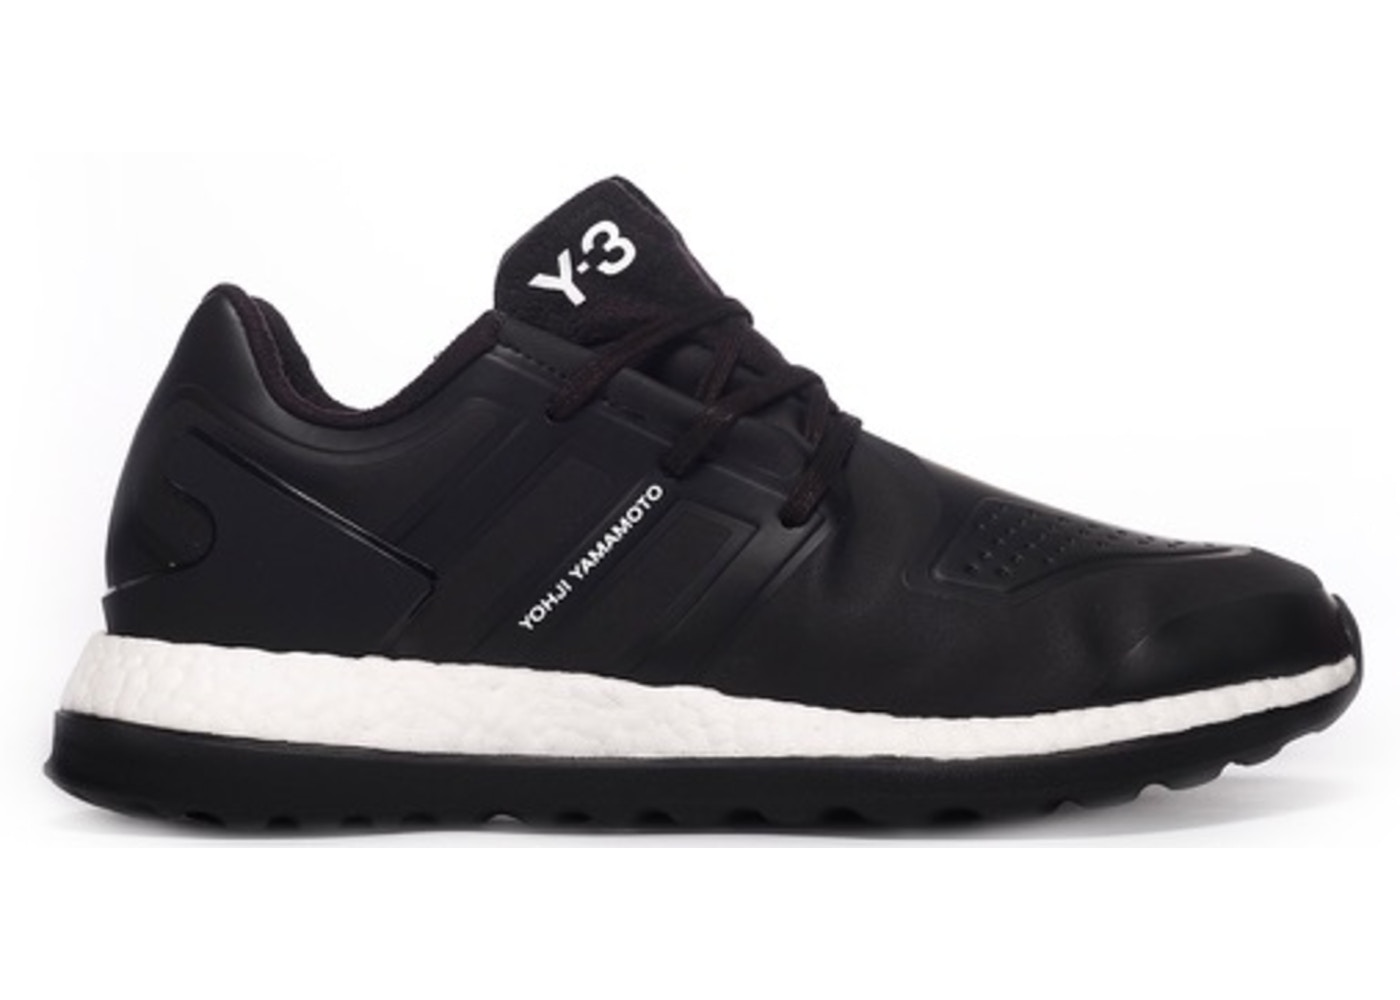 8bb6fed8c Y-3 Pureboost ZG Core Black - BB5396